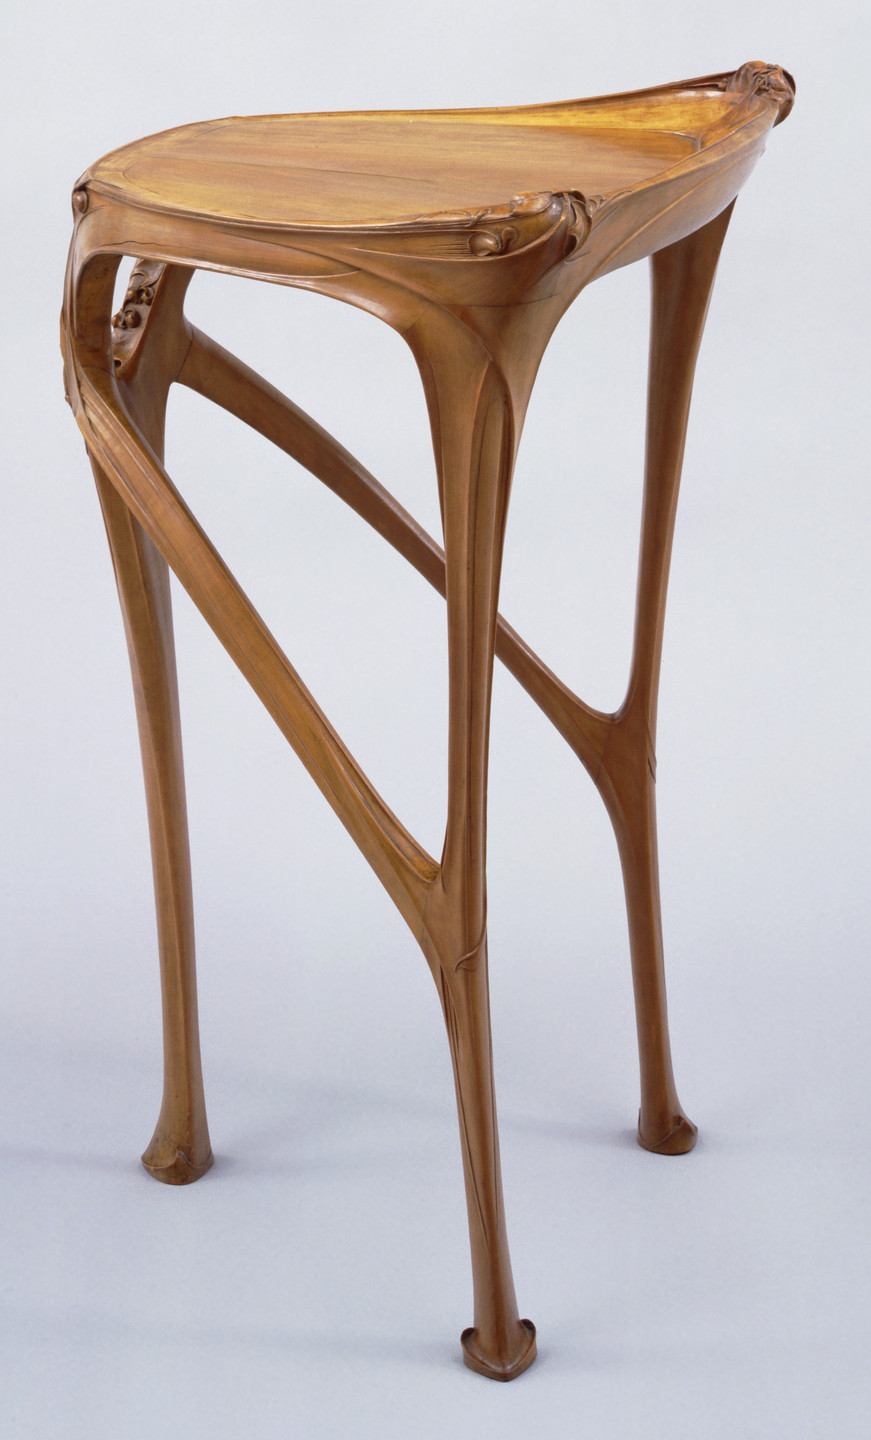 Hector Guimard. Side Table. 1904–1907